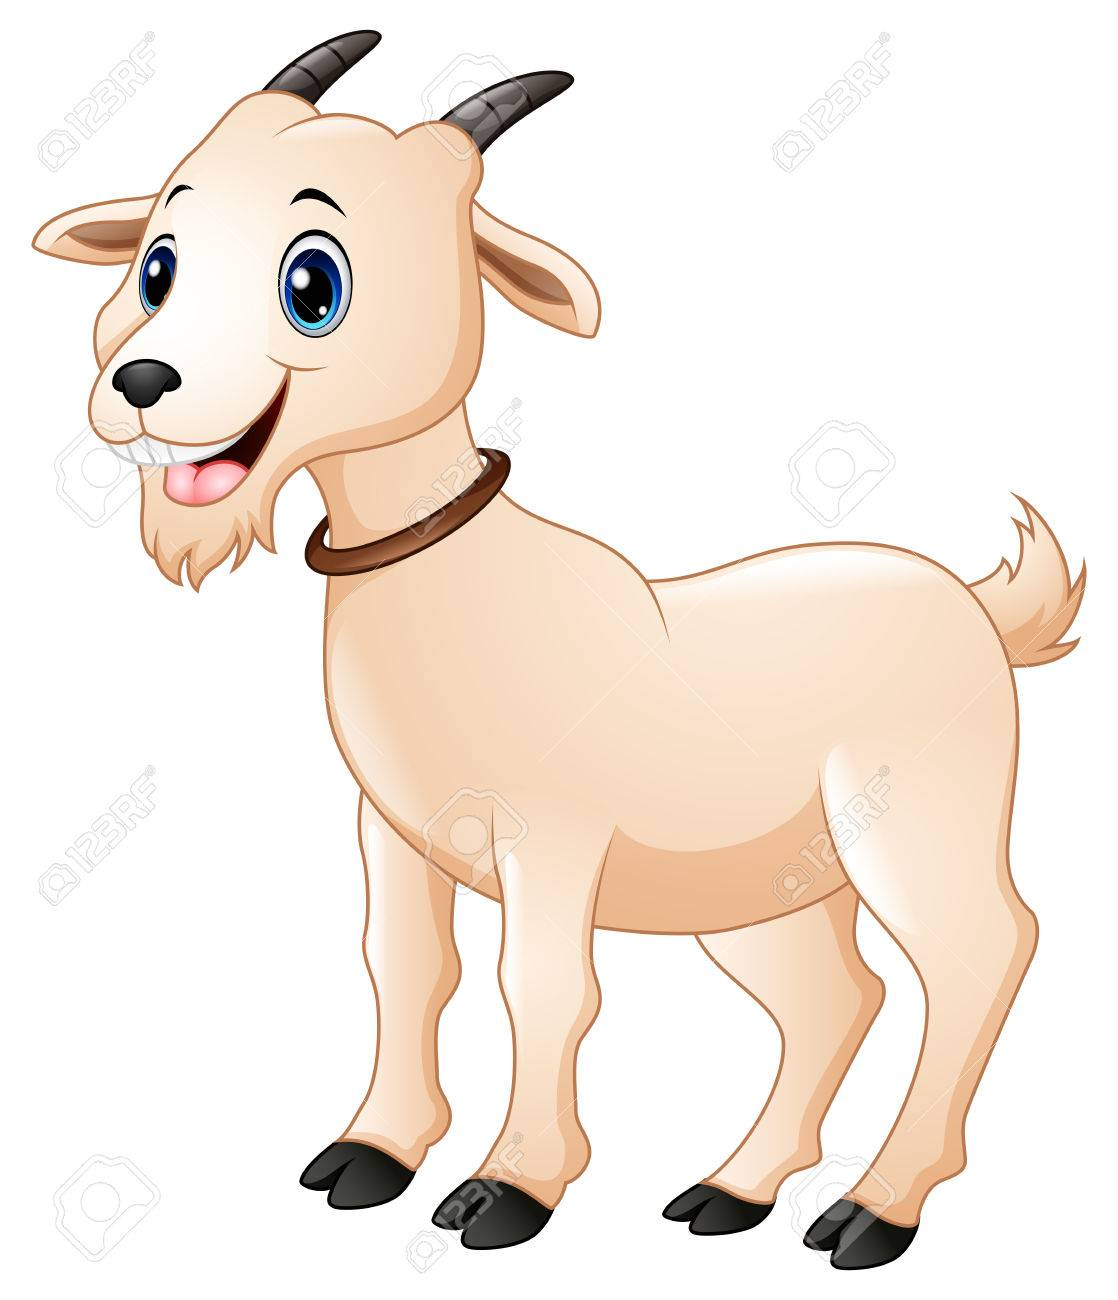 cute goat cartoon stock photo picture and royalty free image image rh 123rf com baby goat cartoon pictures goat cartoon images black and white